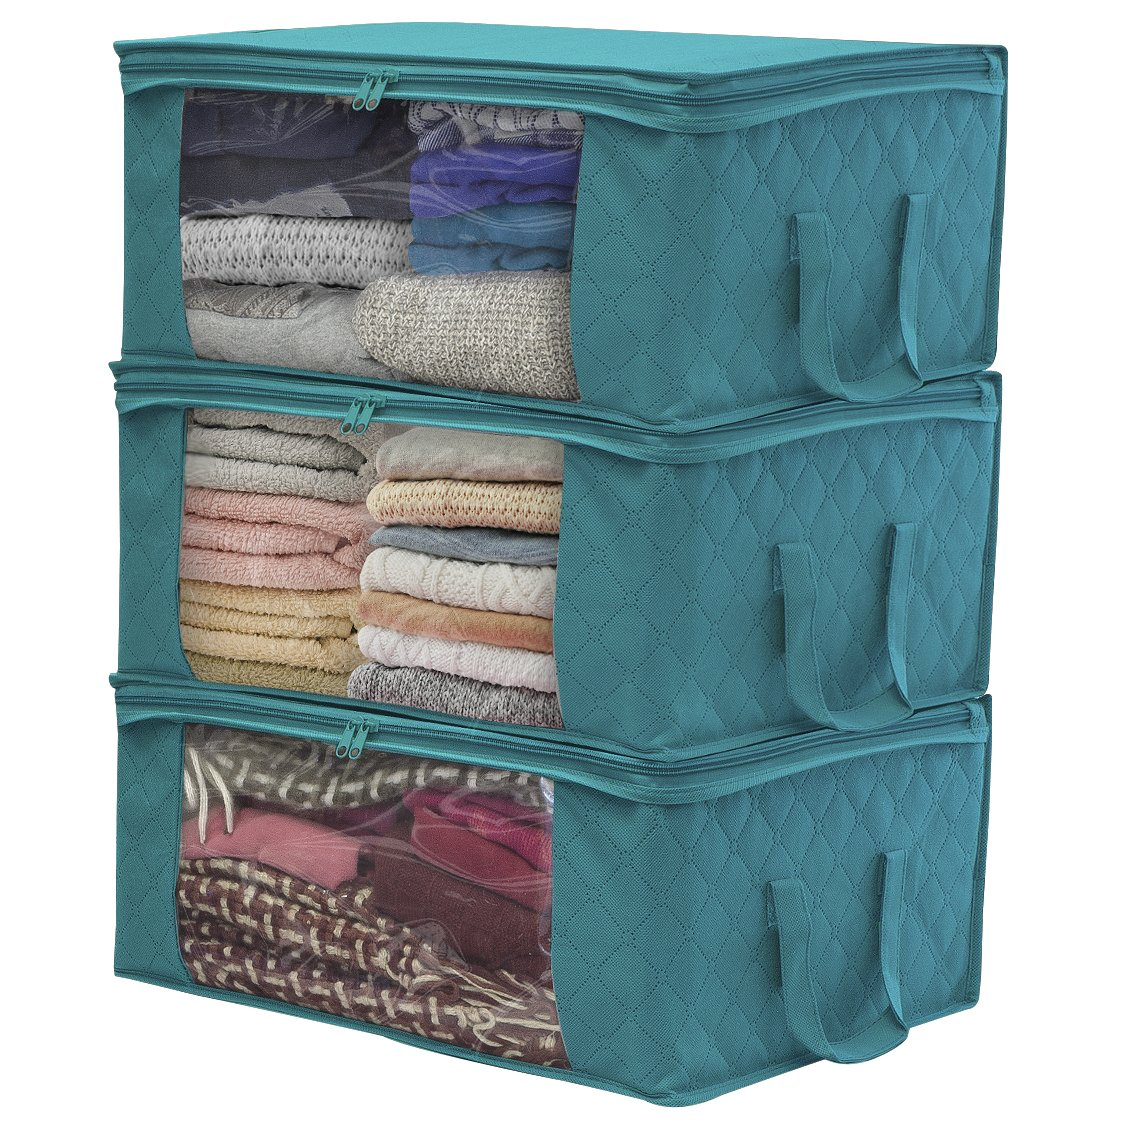 Sorbus Foldable Storage Bag Organizers, Large Clear Window & Carry Handles, Great for Clothes, Blankets, Closets, Bedrooms, and more (3 Pack, Aqua)